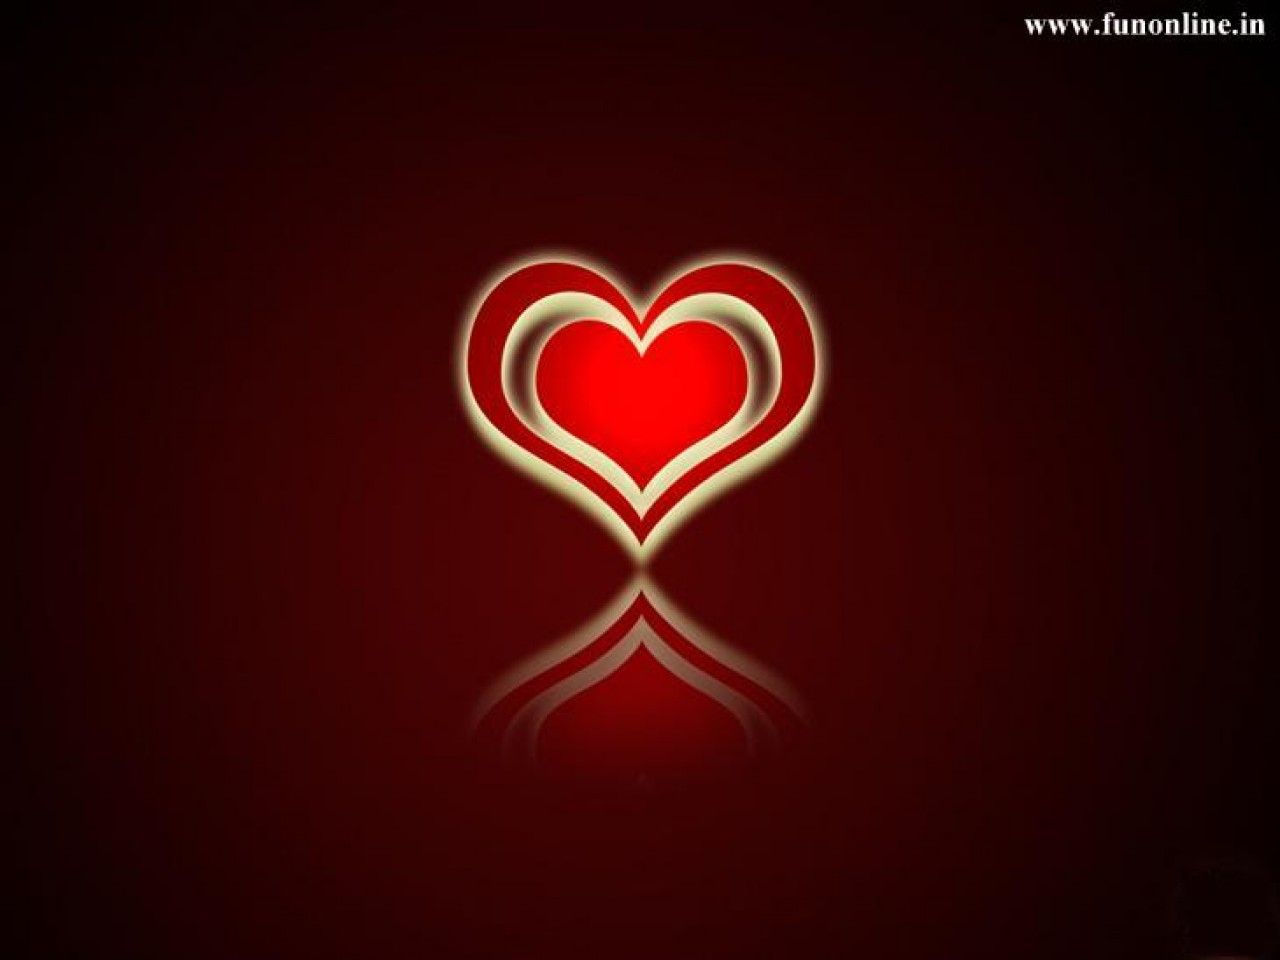 Picture of a heart love widescreen hd wallpapers hearts l picture of a heart love widescreen hd wallpapers buycottarizona Images